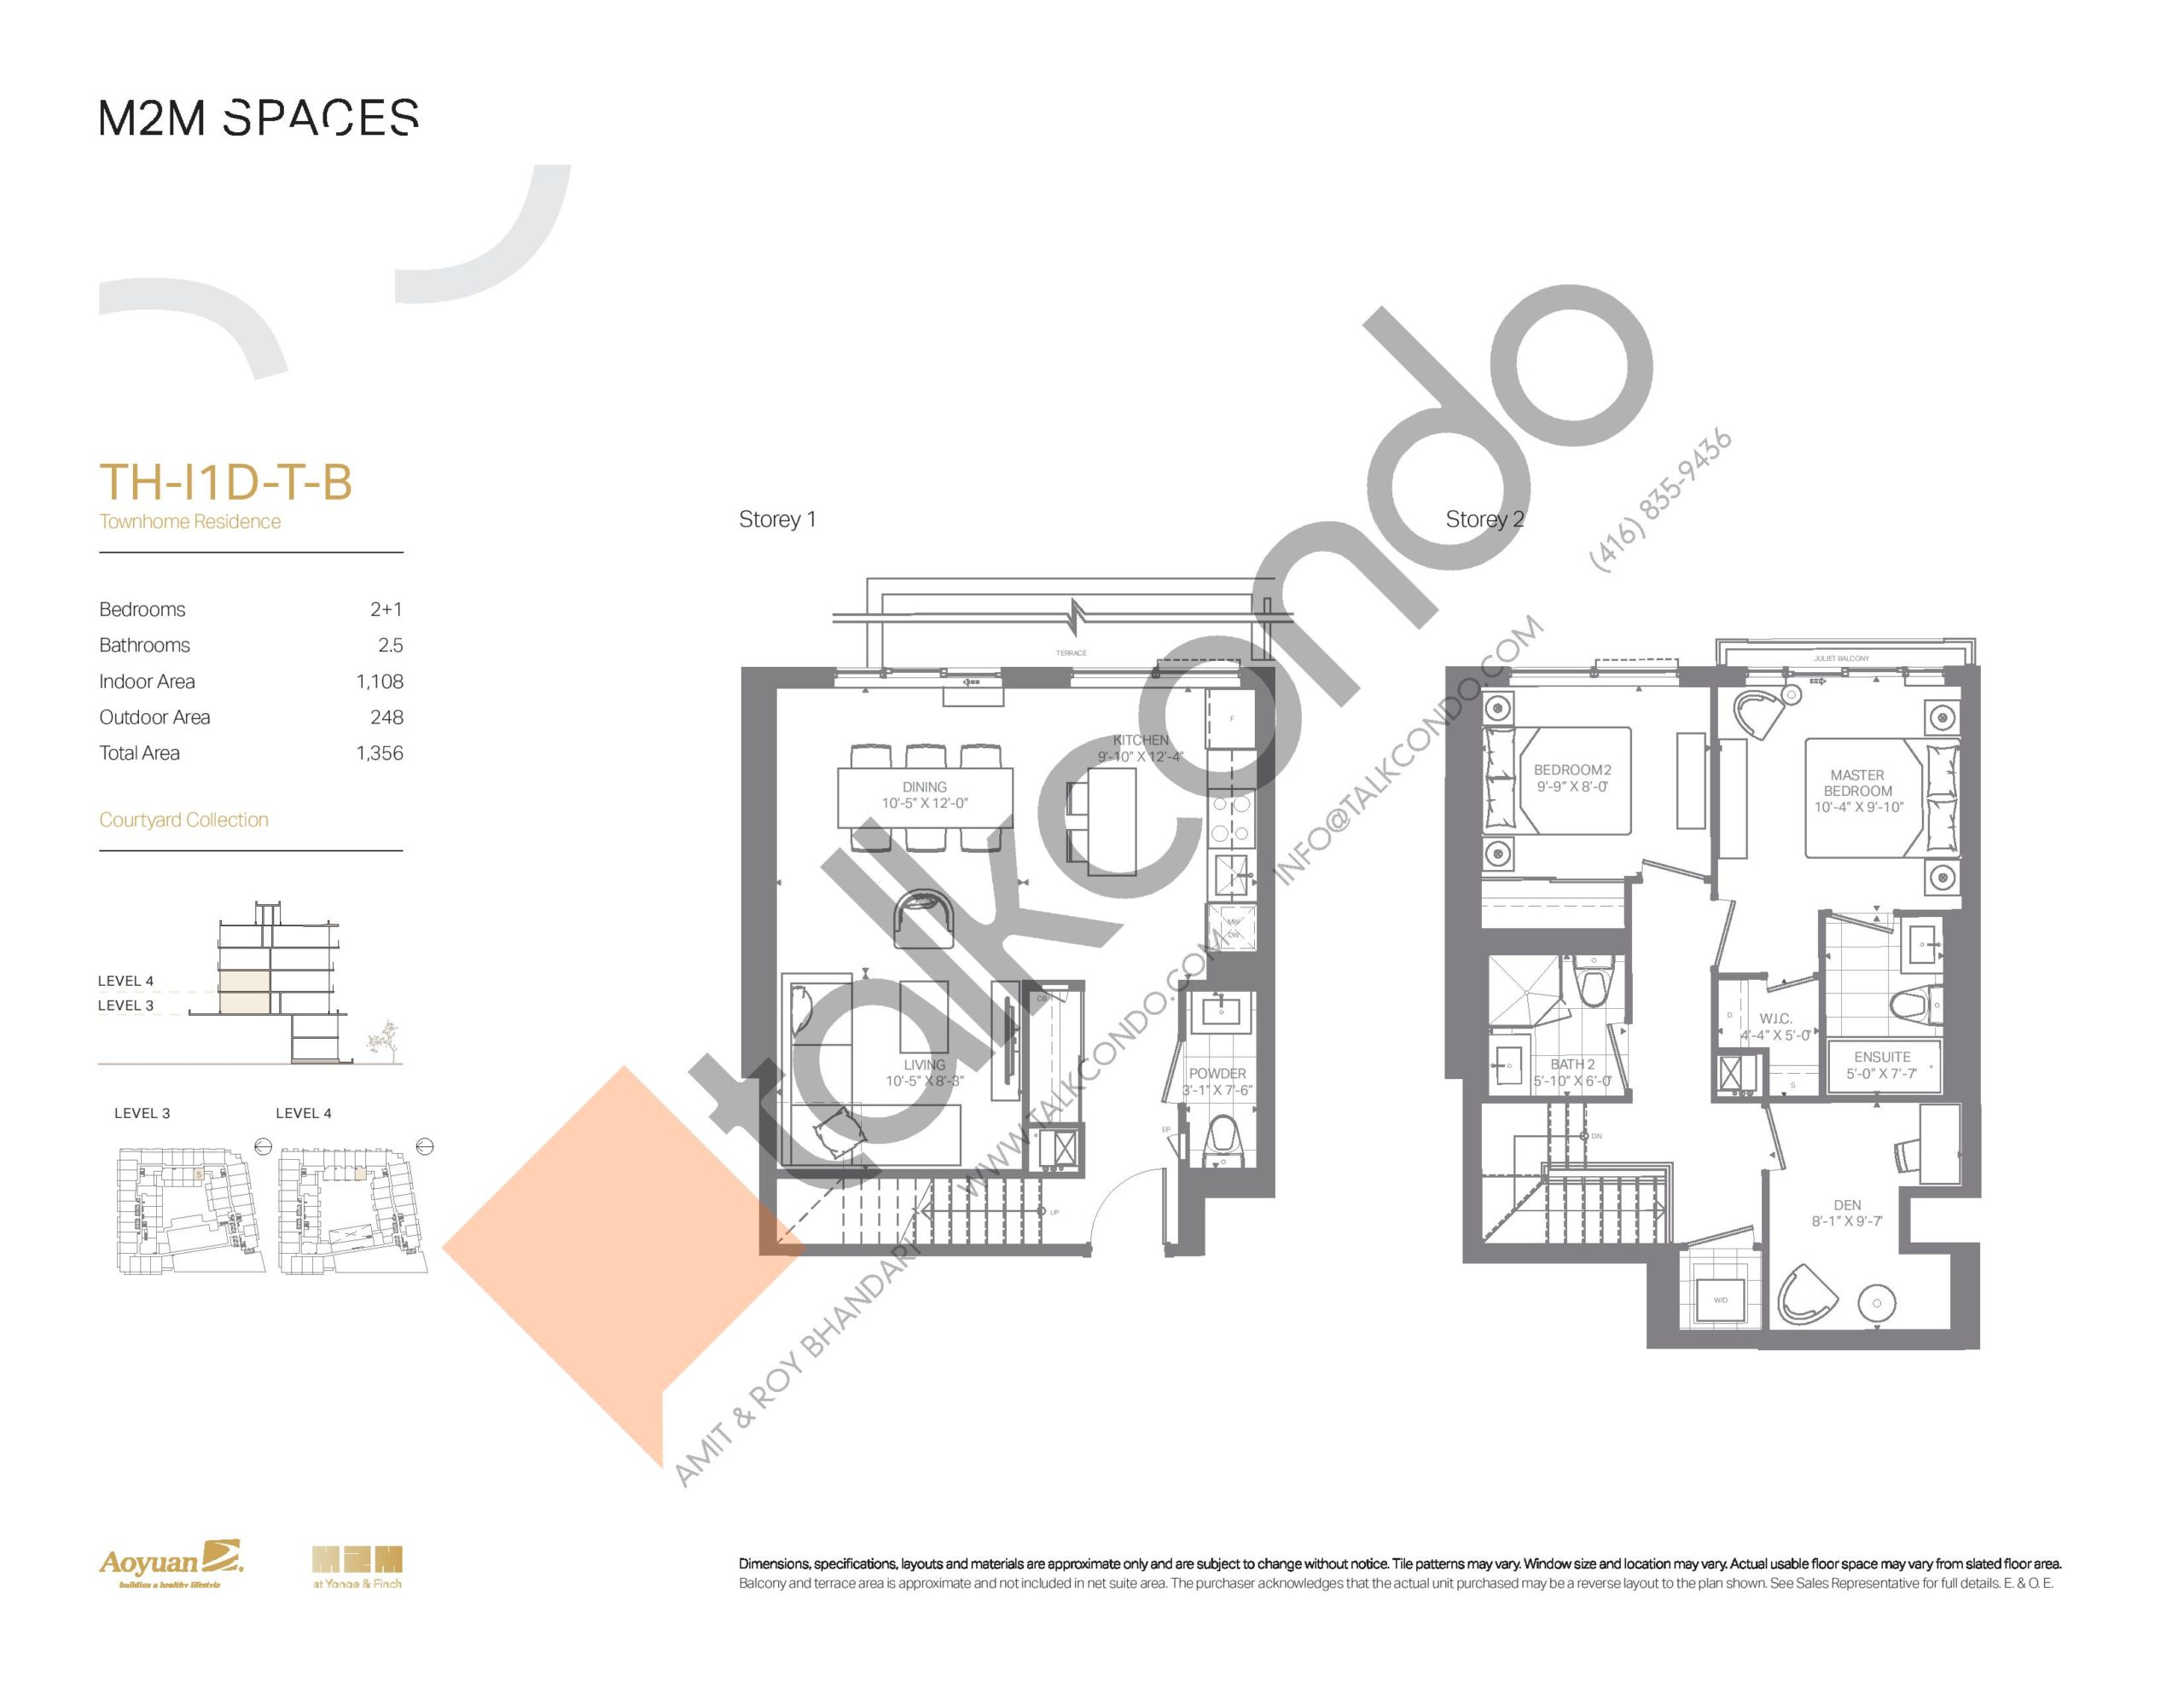 TH-I1D-T-B (Courtyard Collection) Floor Plan at M2M Spaces Condos - 1108 sq.ft